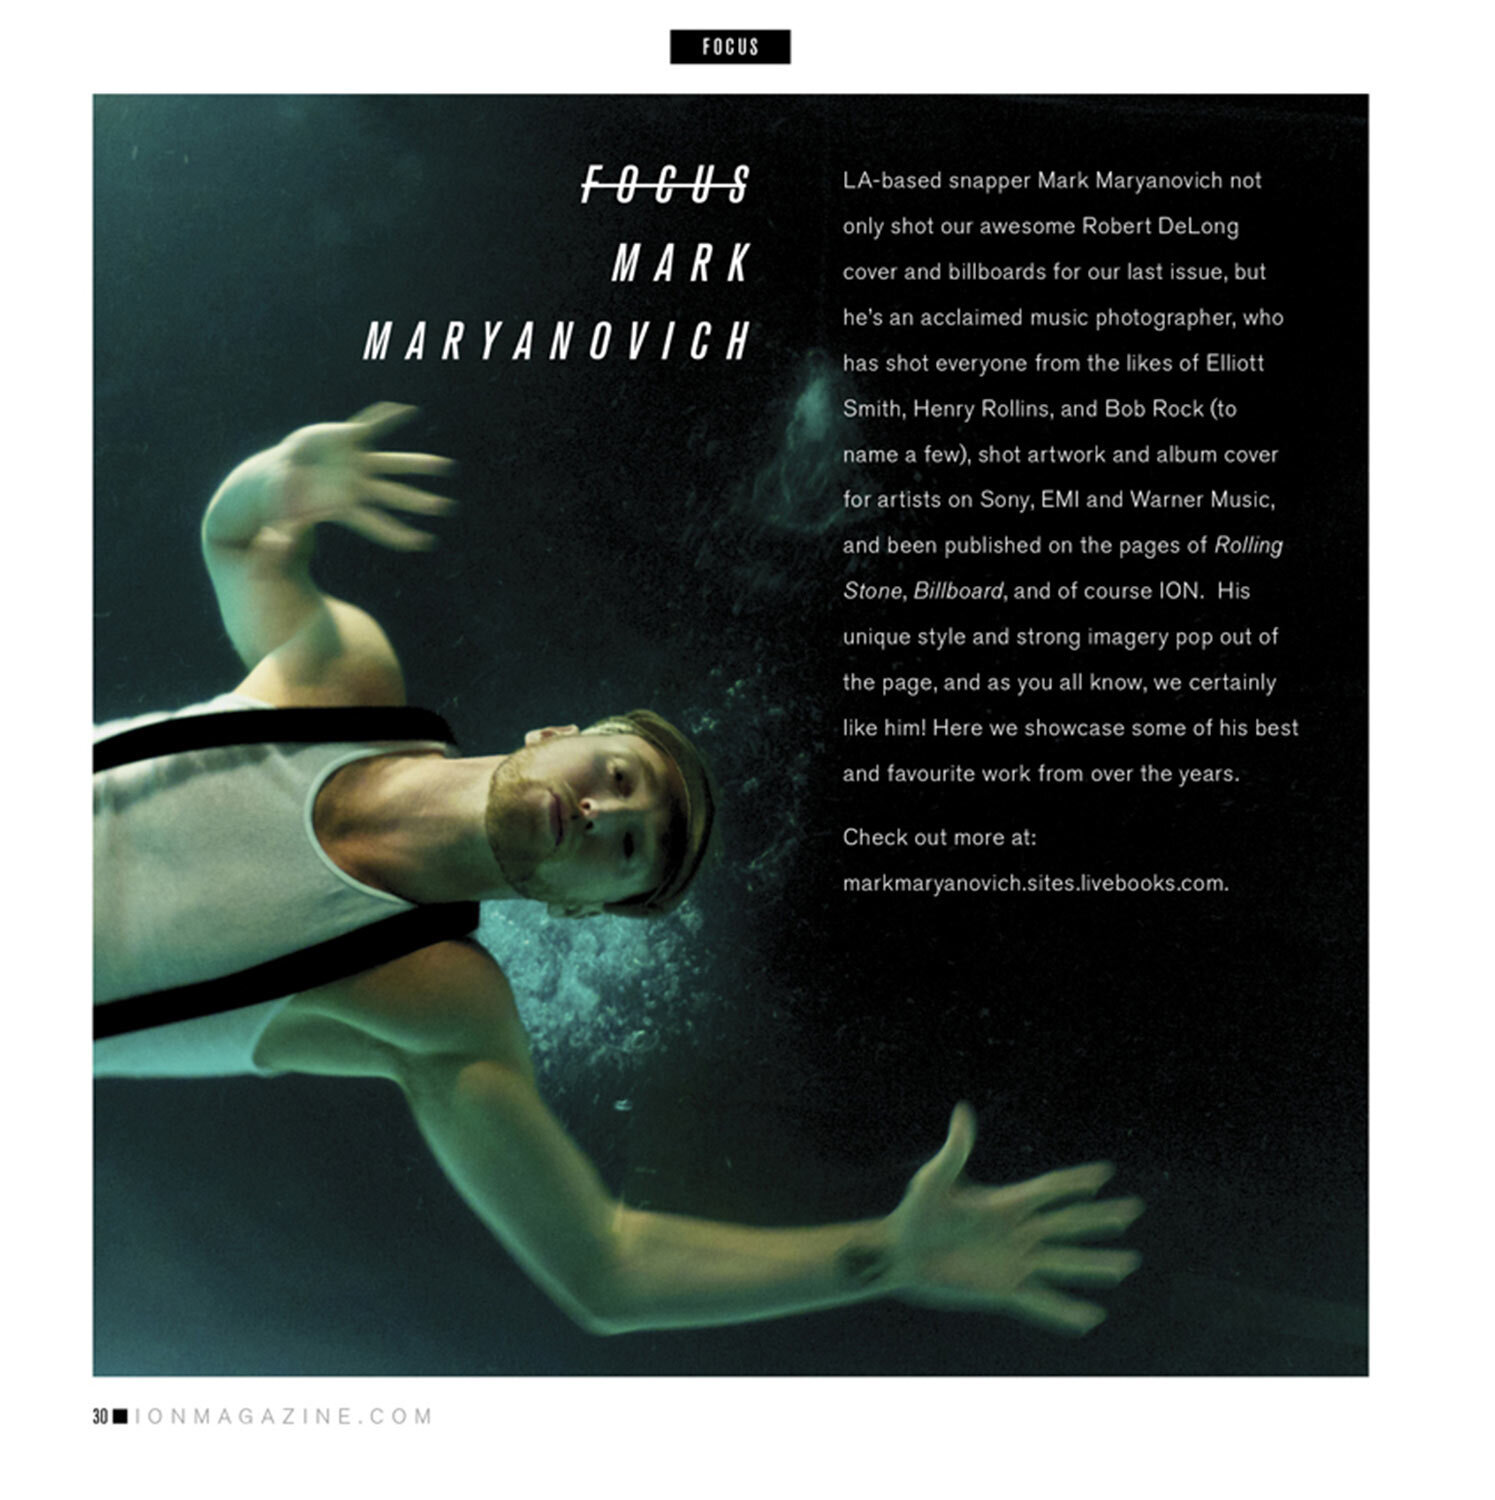 Article on Mark Maryanovich Photography page 1 text introduction overlaid on underwater portrait of swimming musician Publication ION Magazine page 1